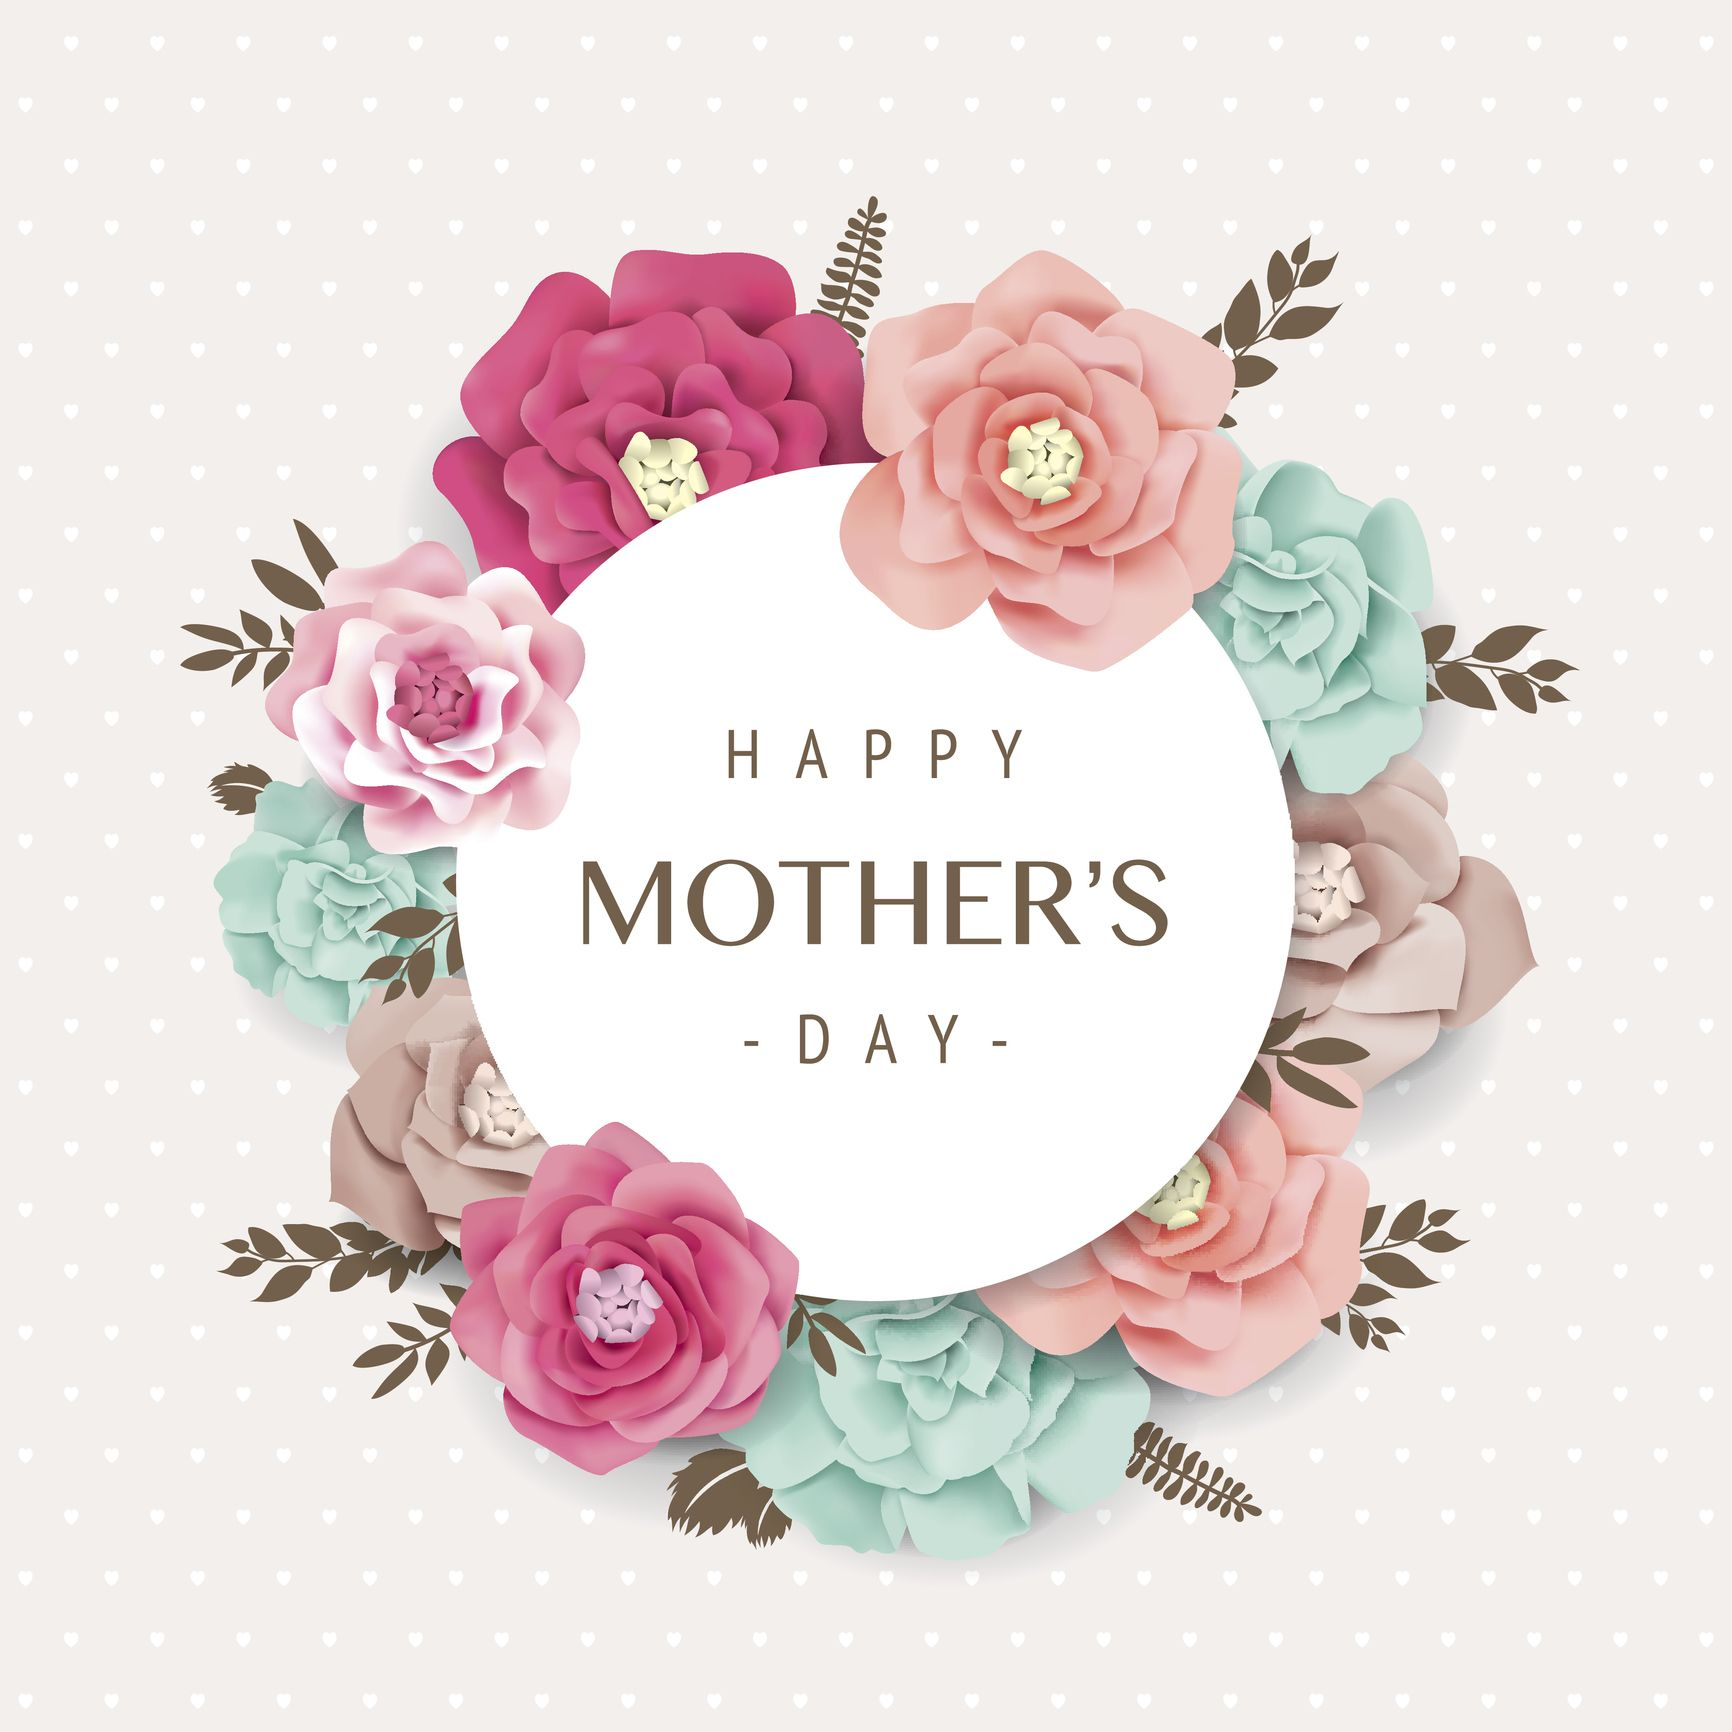 Homepage | Happy mothers day wishes, Happy mother's day card, Happy mothers  day images